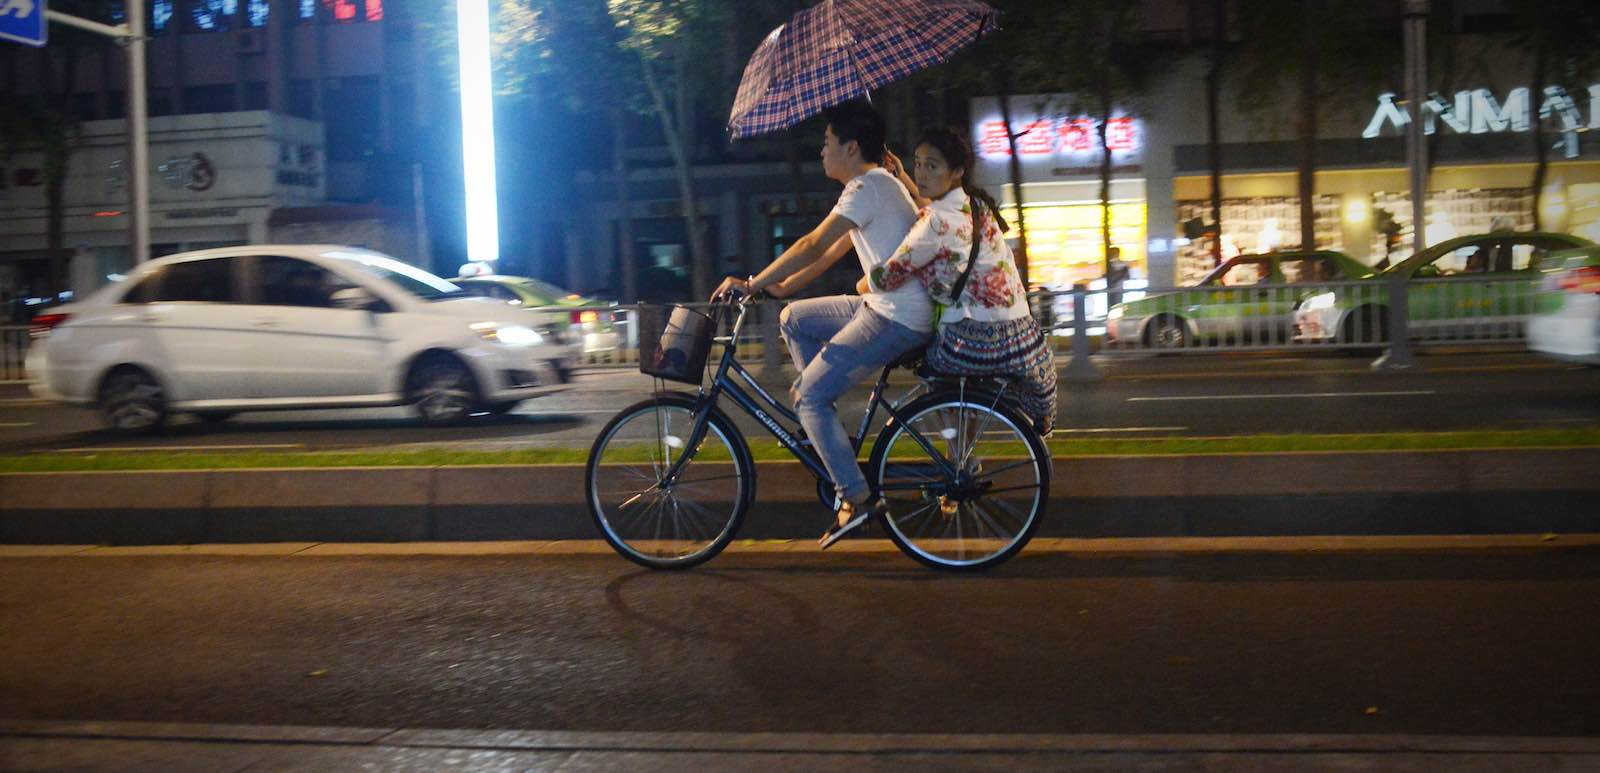 People can peddle faster, but will they get ahead? (Photo: Wang Zhao via Getty)